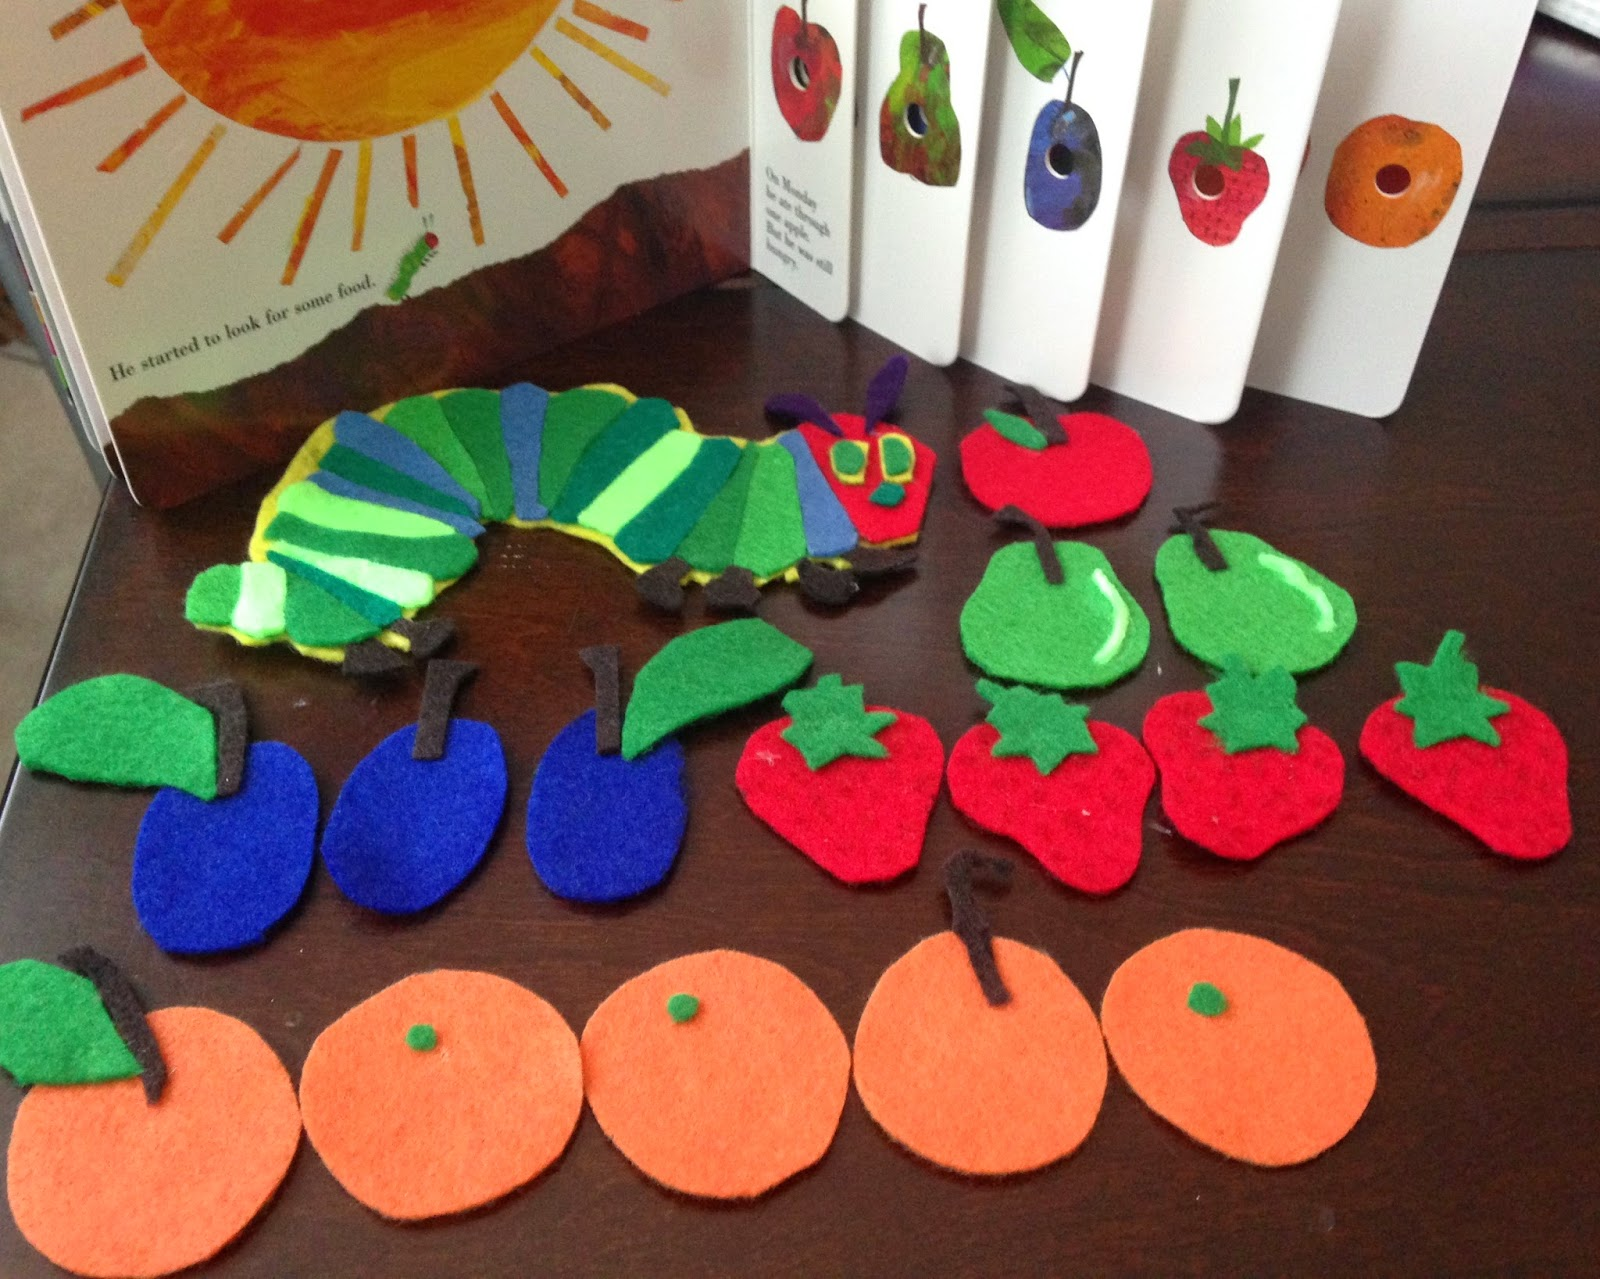 Frugal Allergy Mom: Felt Stories: The Very Hungry Caterpillar